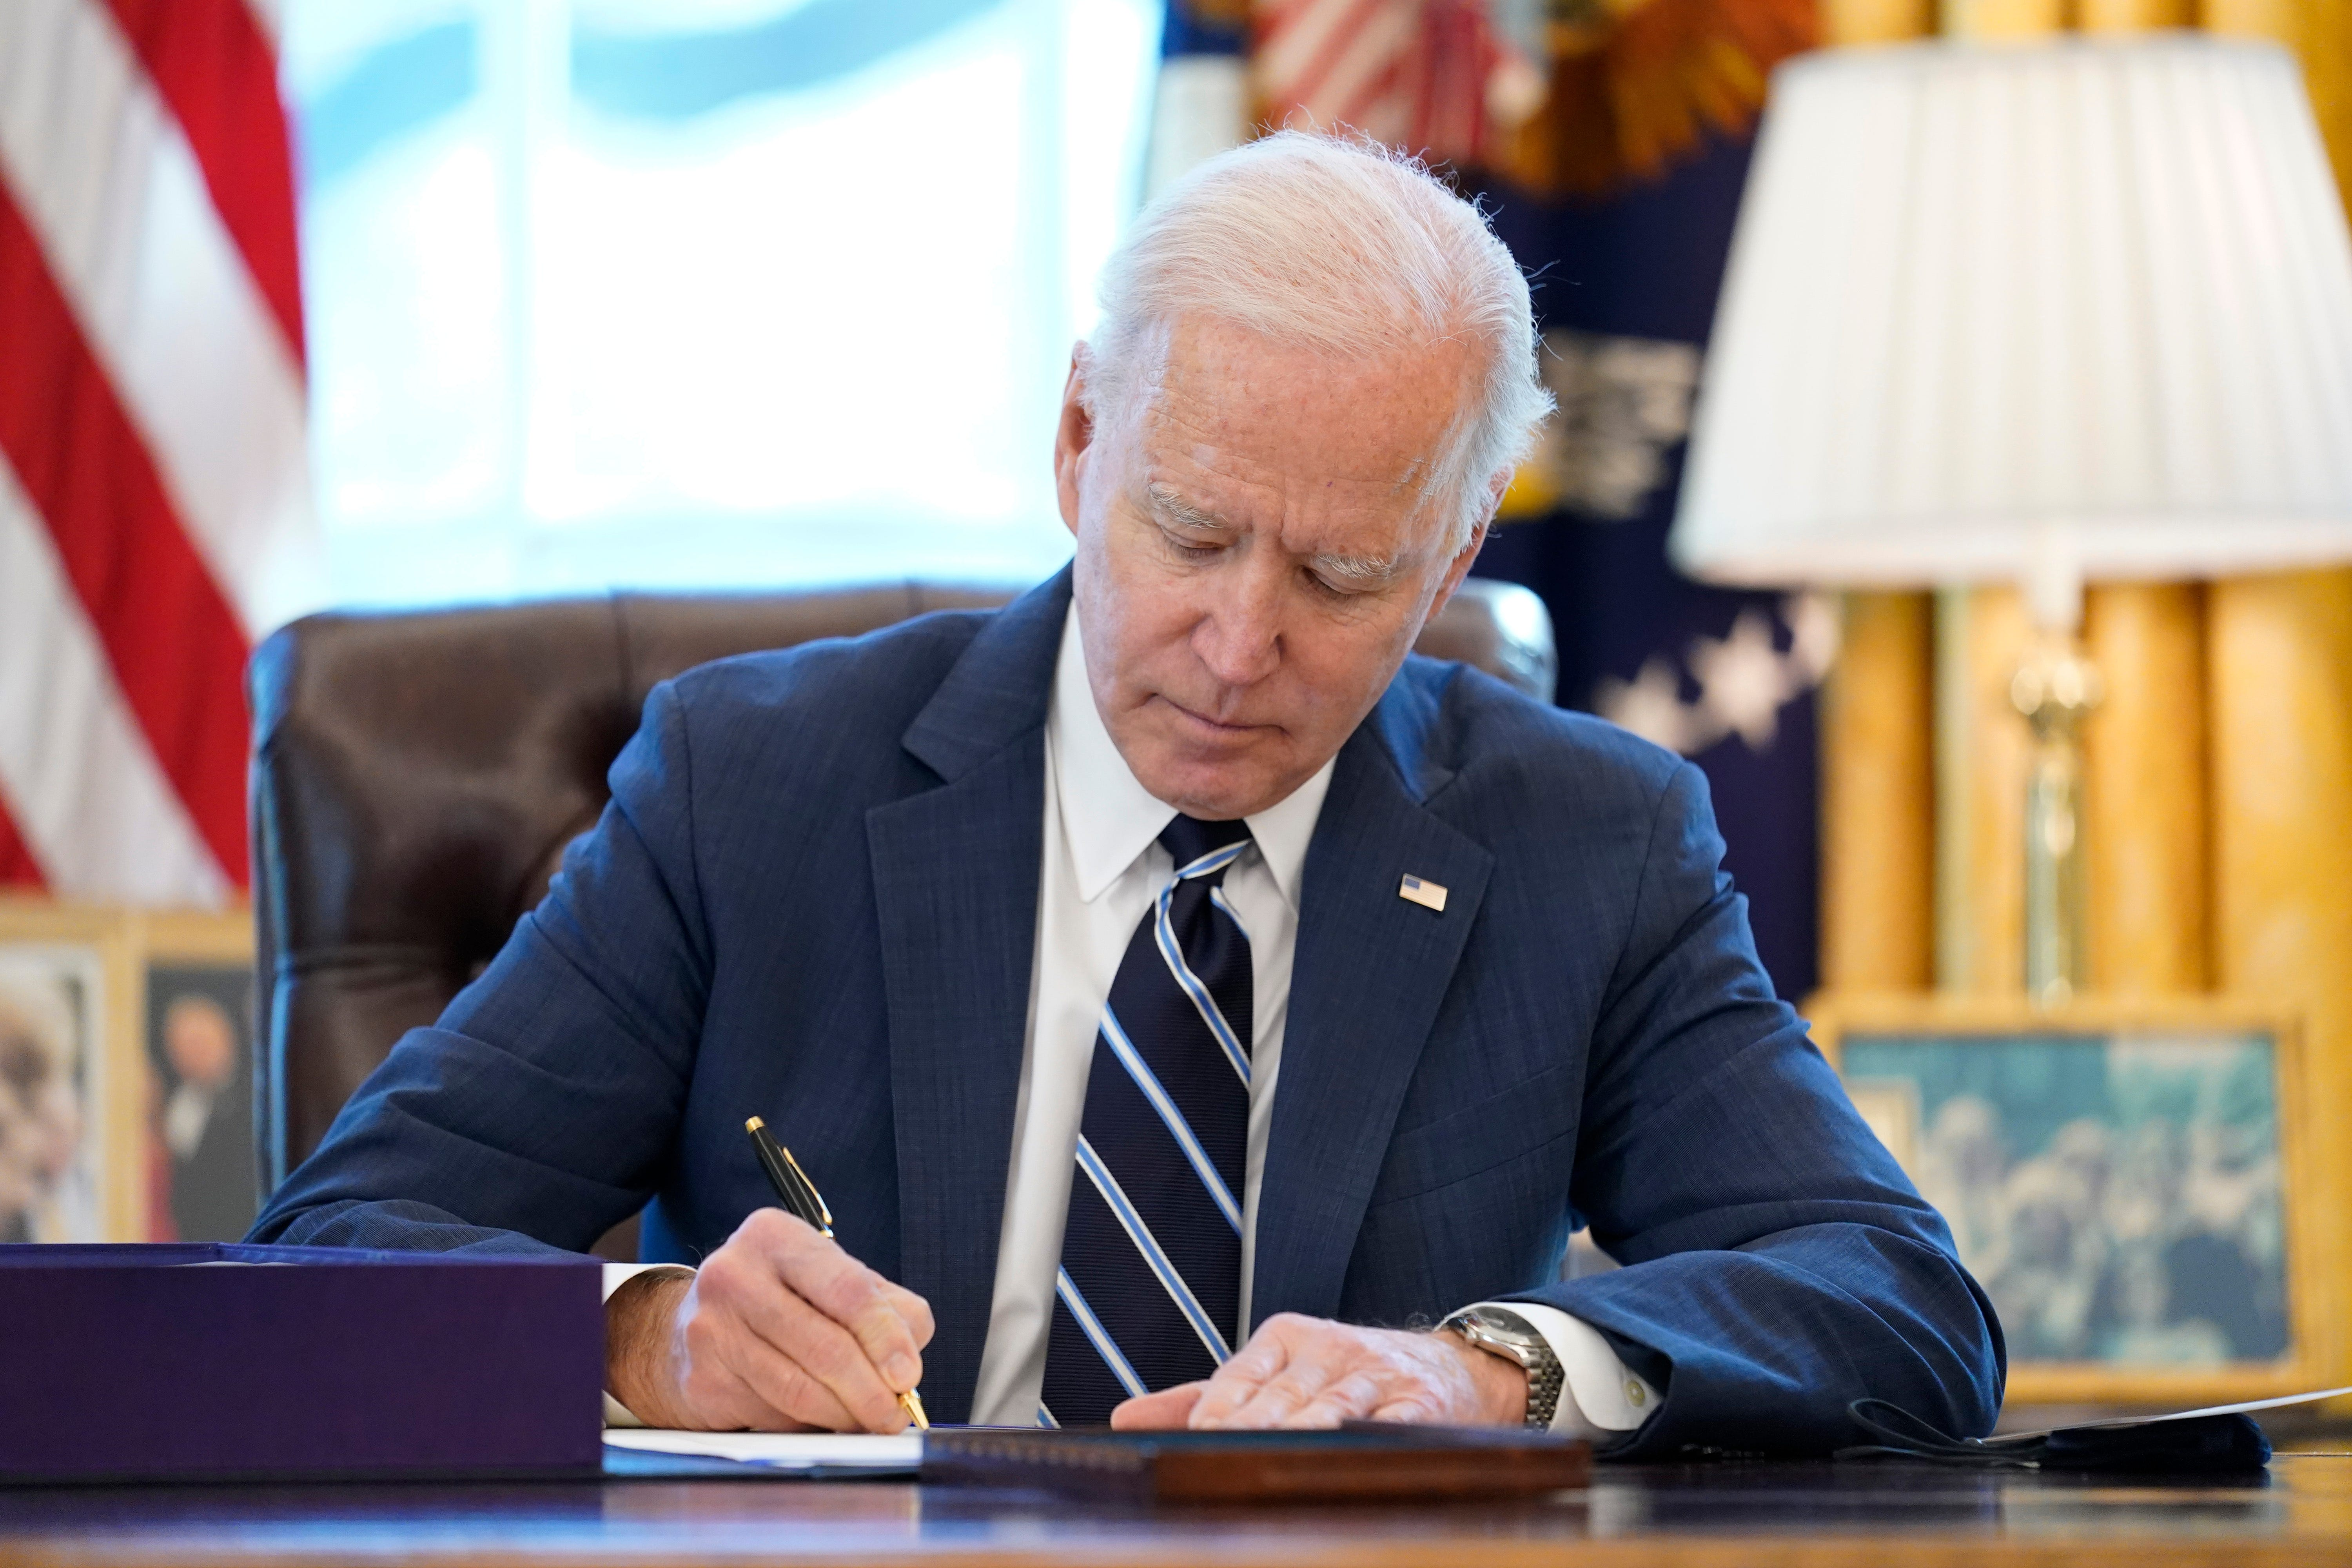 White House: Biden to direct states to make all adults eligible for coronavirus vaccines by May 1 2